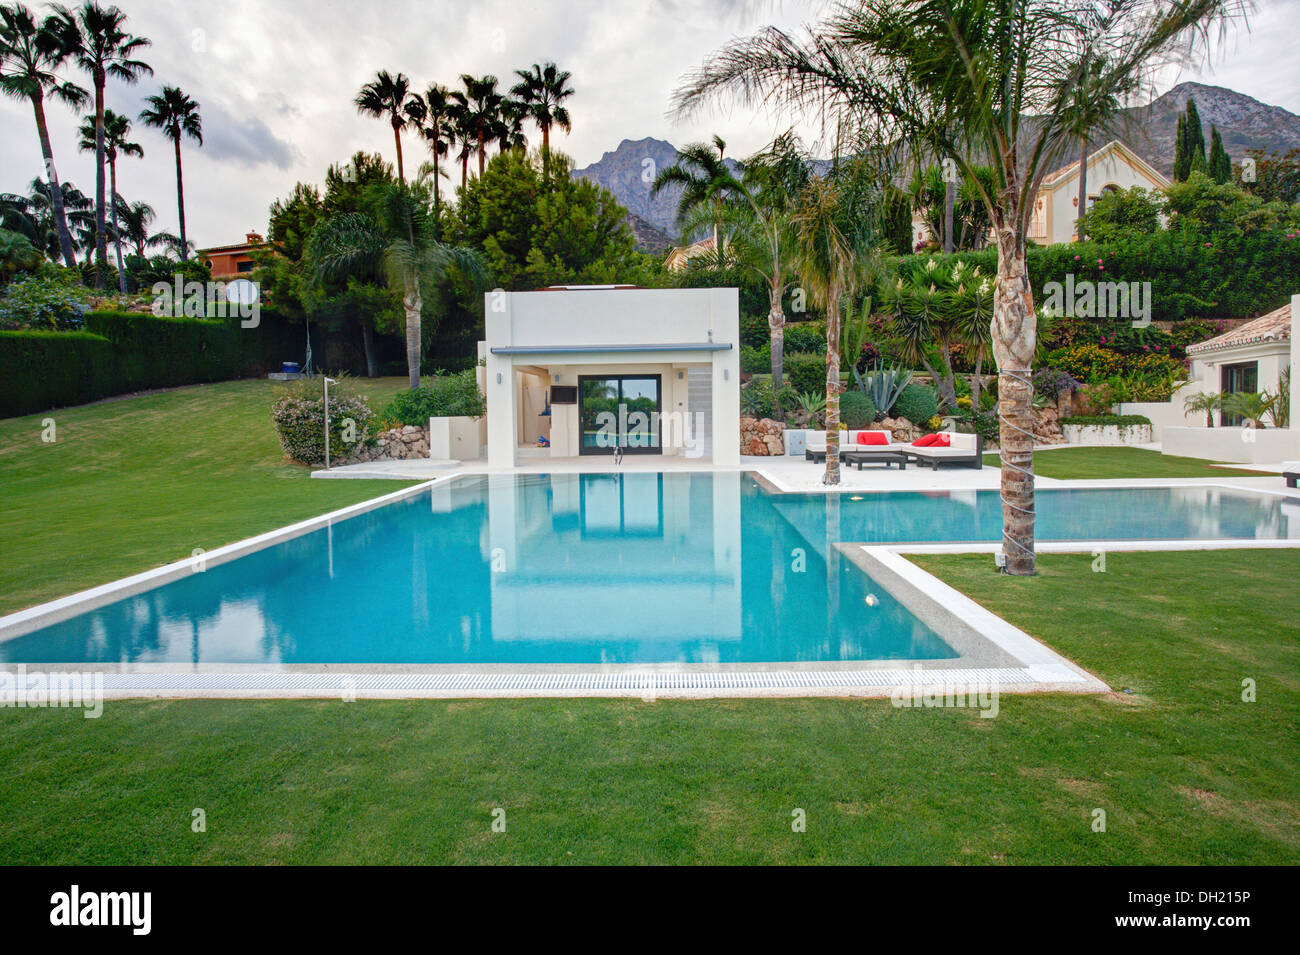 Large, turquoise swimming pool with small modern changing rooms and ...